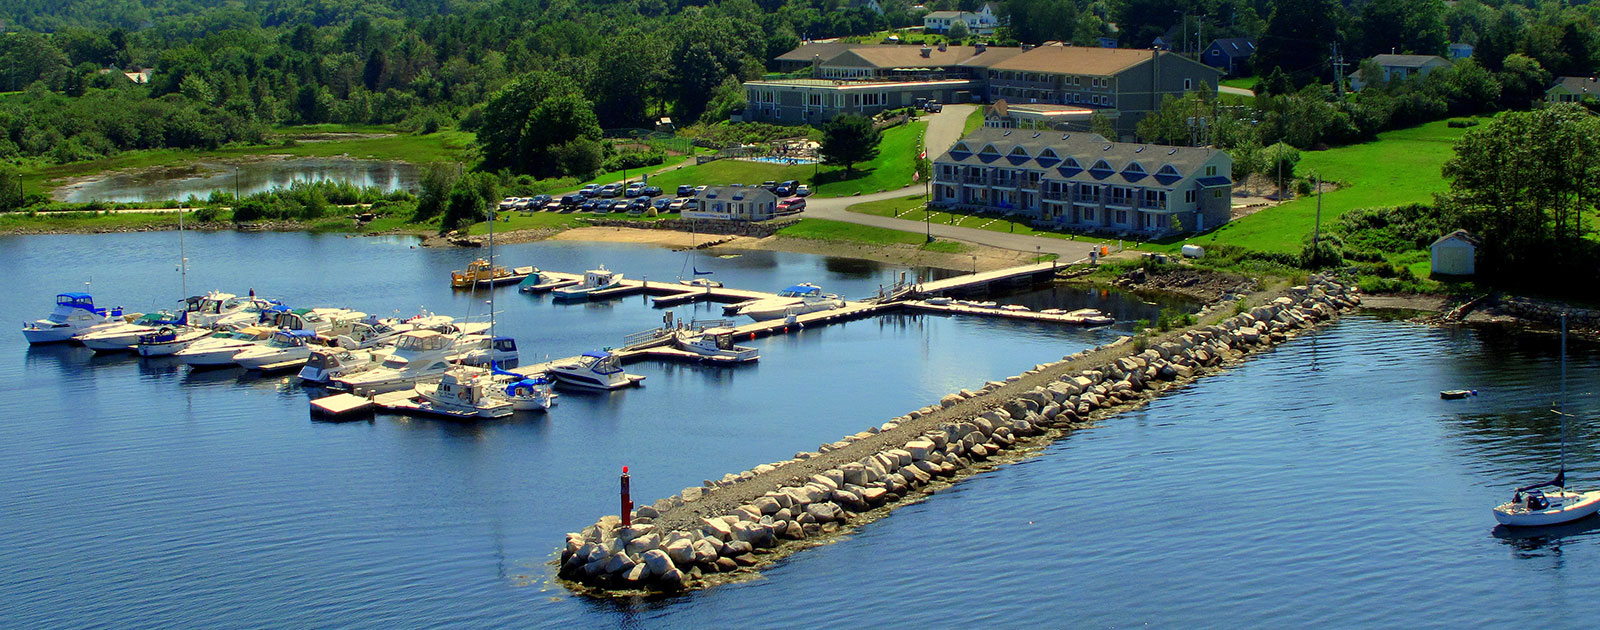 Oak Island Resort & Conference Centre - Marina